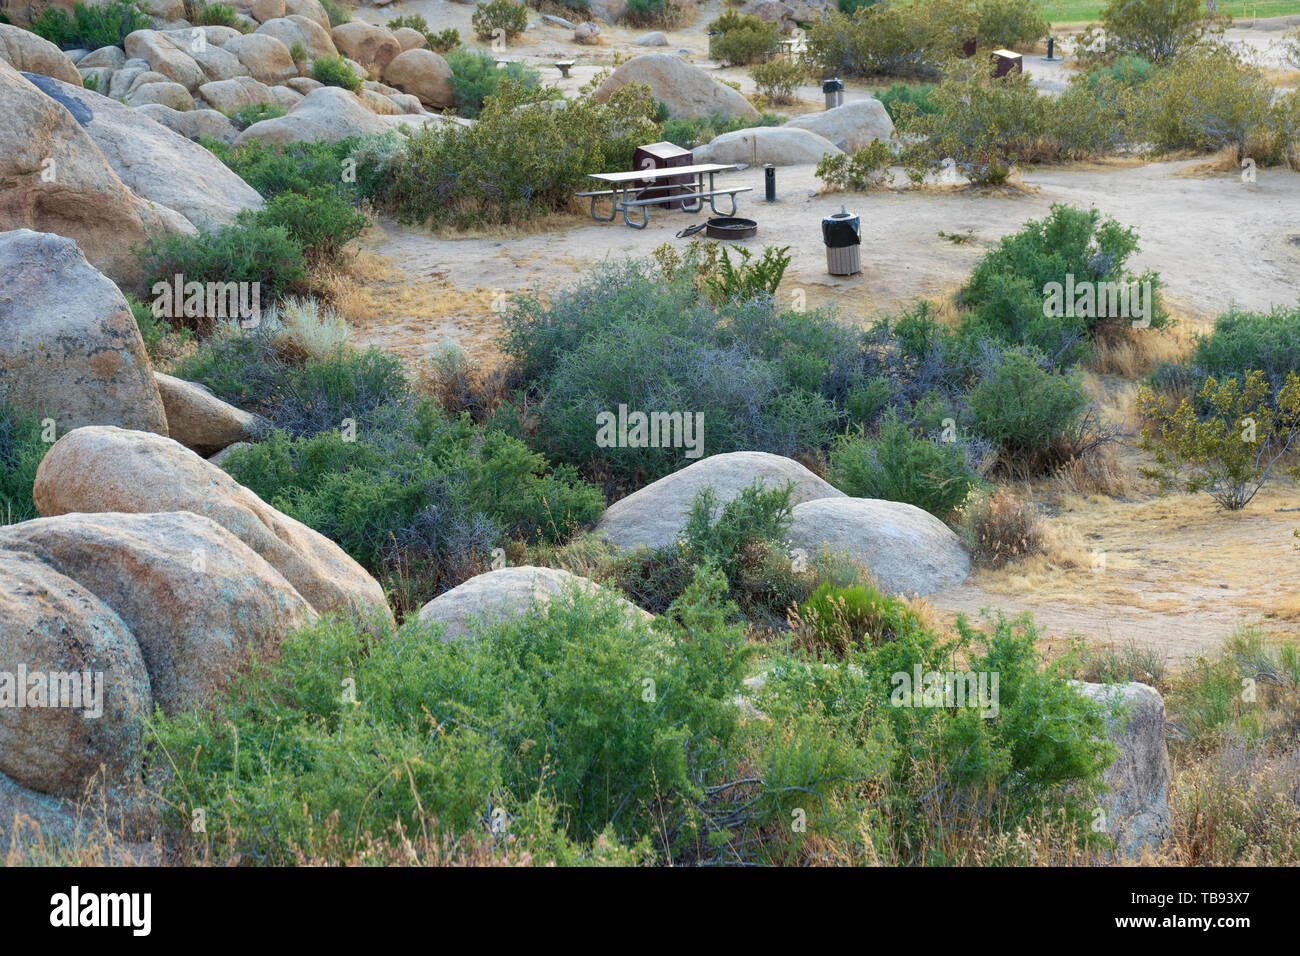 Day use picnic area at Horsemen's Center Park in the Town of Apple Valley, California, in the Mojave Desert. Stock Photo